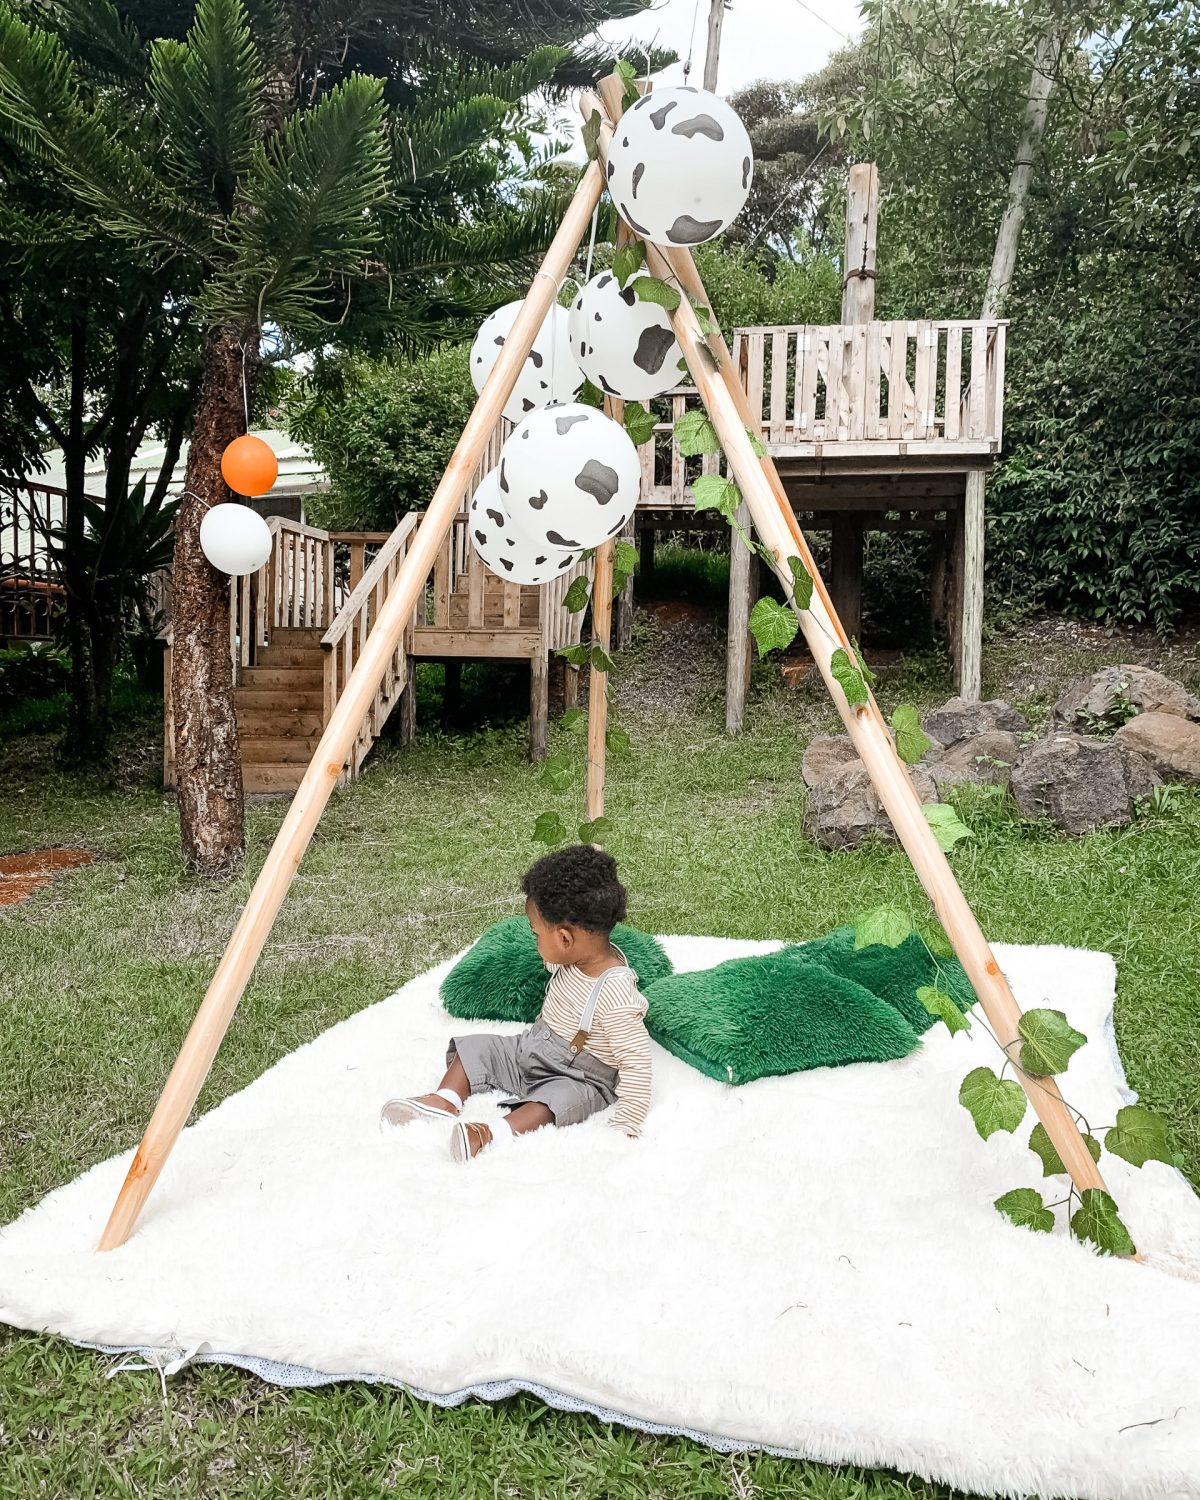 Black baby boy sitting on picnic mat underneath wooden teepee structure - baby birthday party ideas